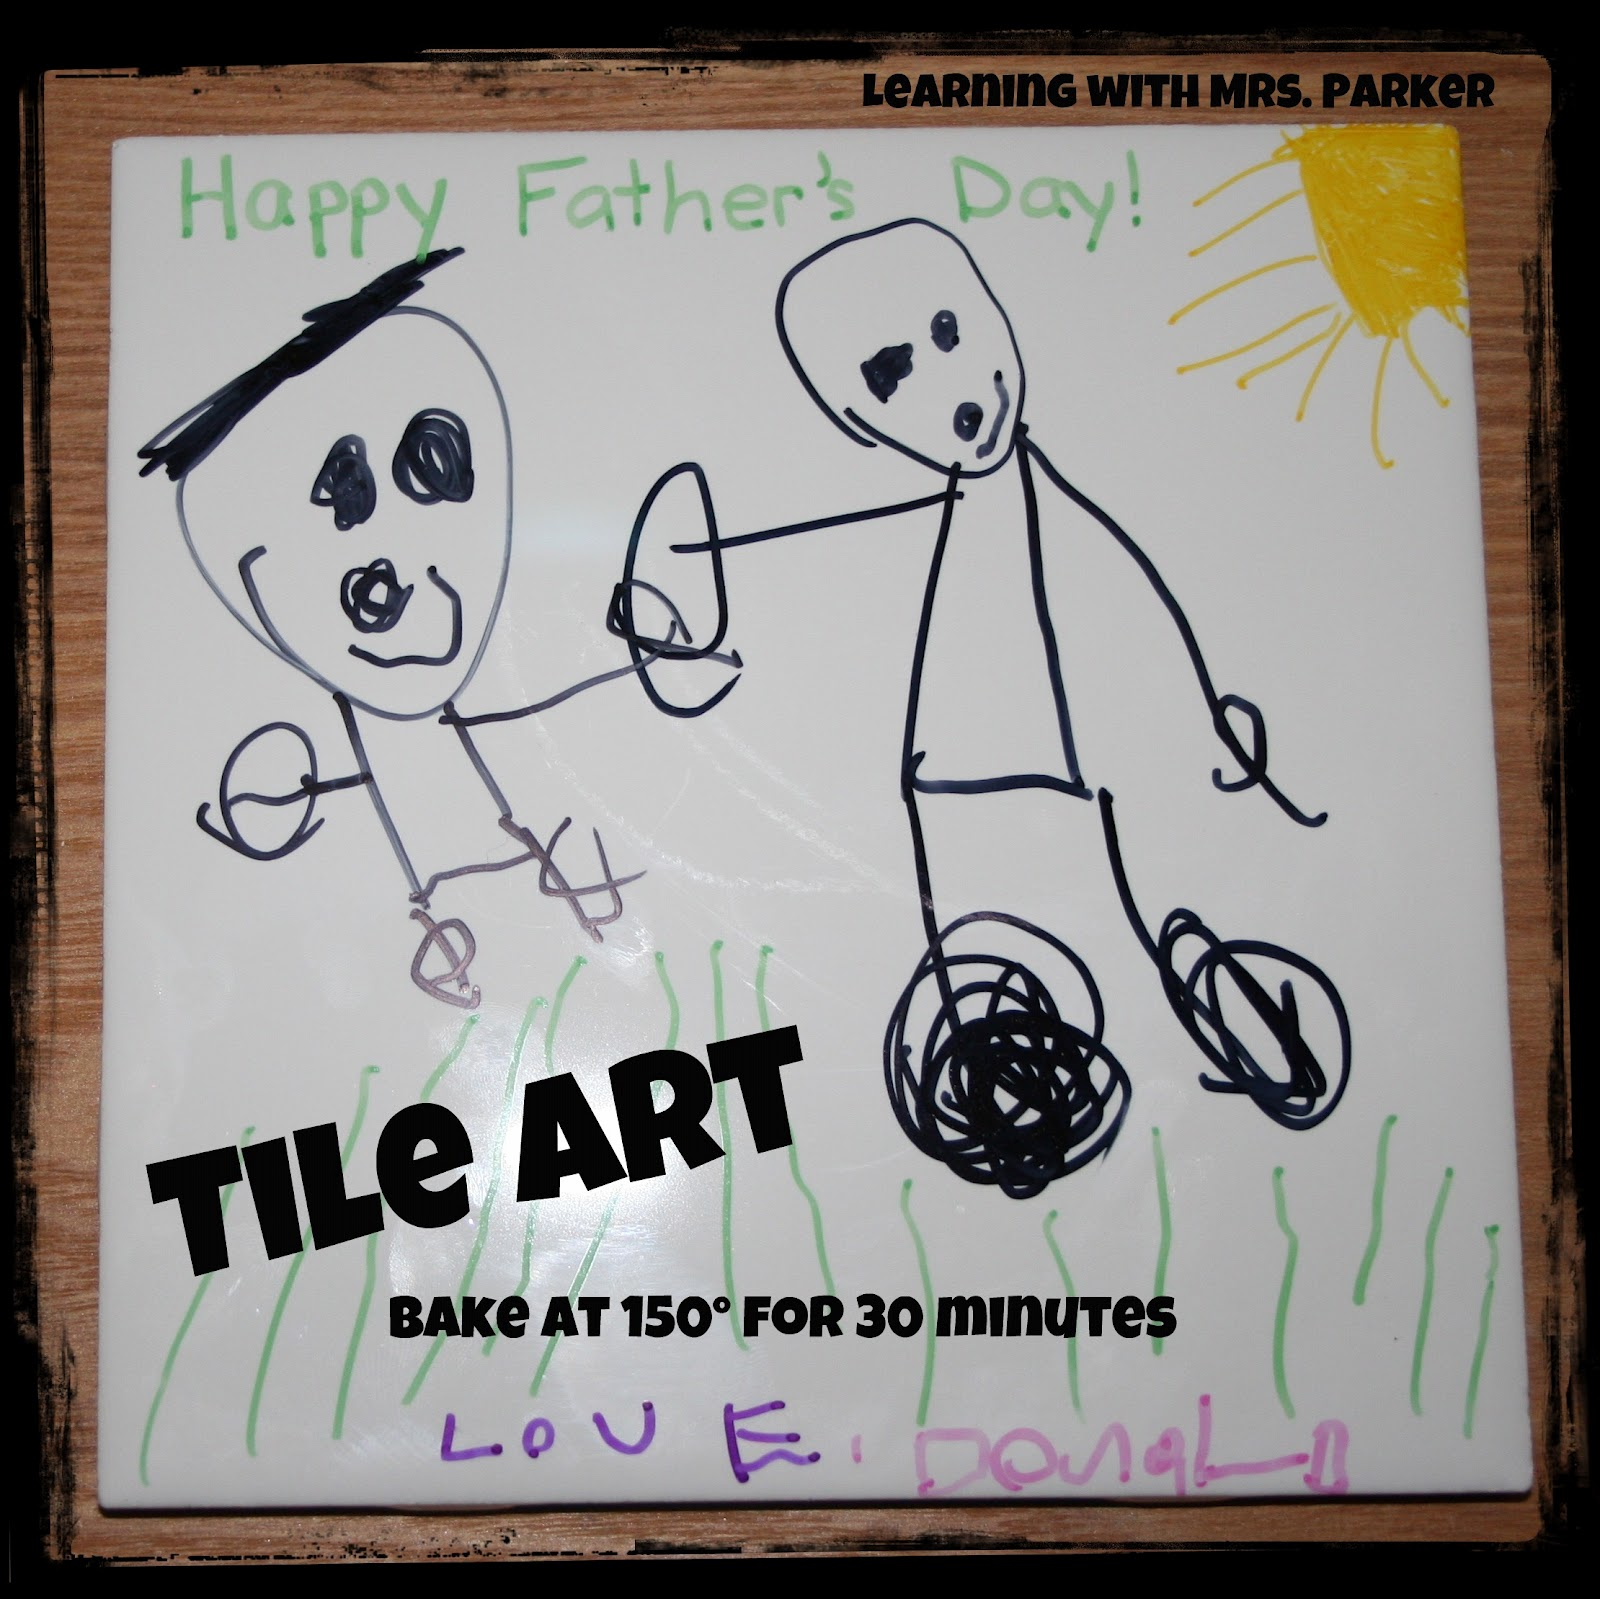 Tile Art for Father's Day - Learning With Mrs. Parker